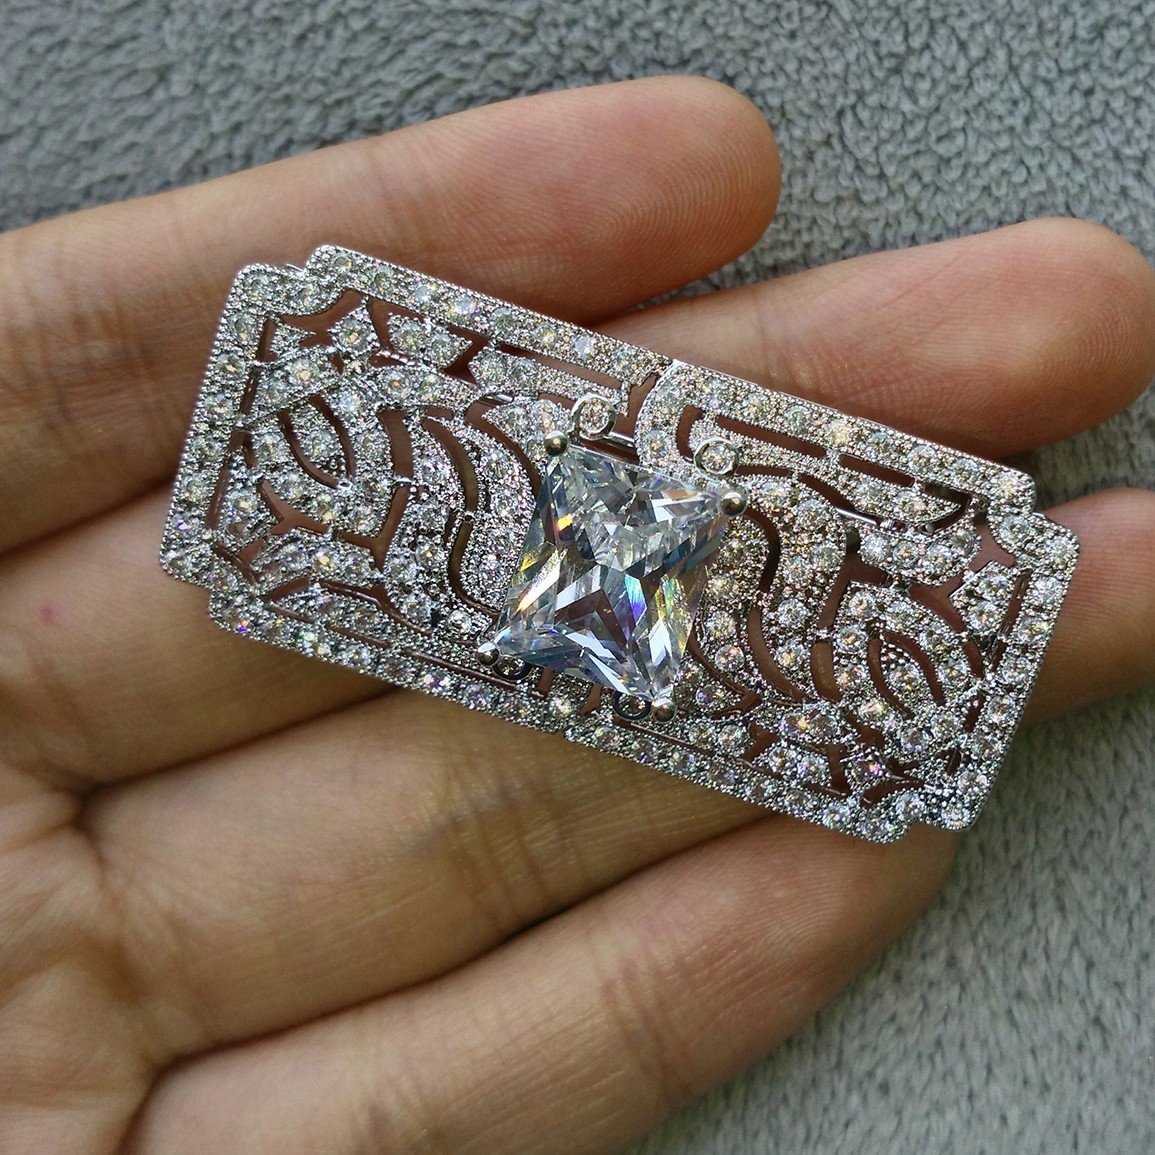 GULICX Wedding Vintage Art Deco Zircon Brooch Pin Silver Plated Base Bride Prom White Clear Accessory by GULICX (Image #5)